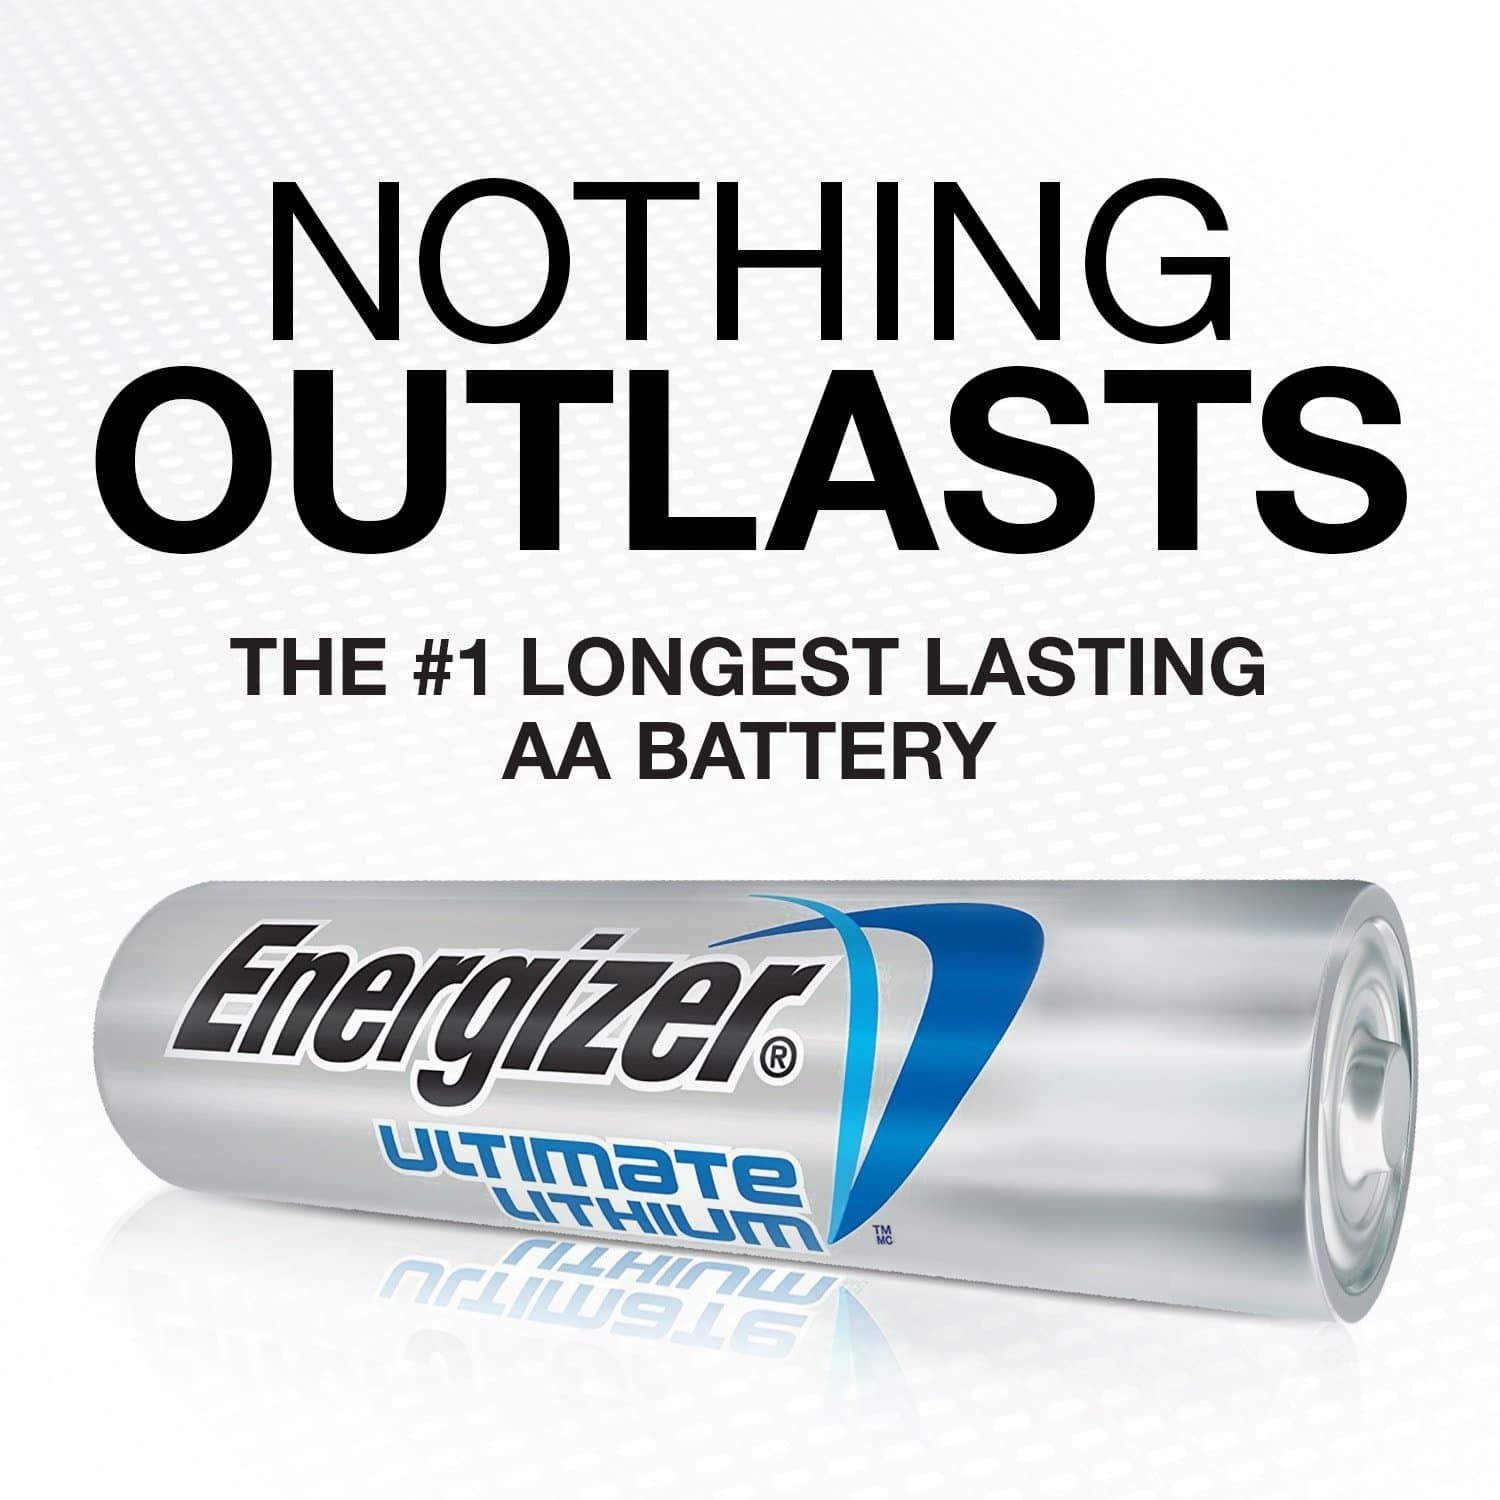 [Amazon] 24 battery count Energizer AA Ultimate Lithium $24.36 after S&S AC --$1.02 each